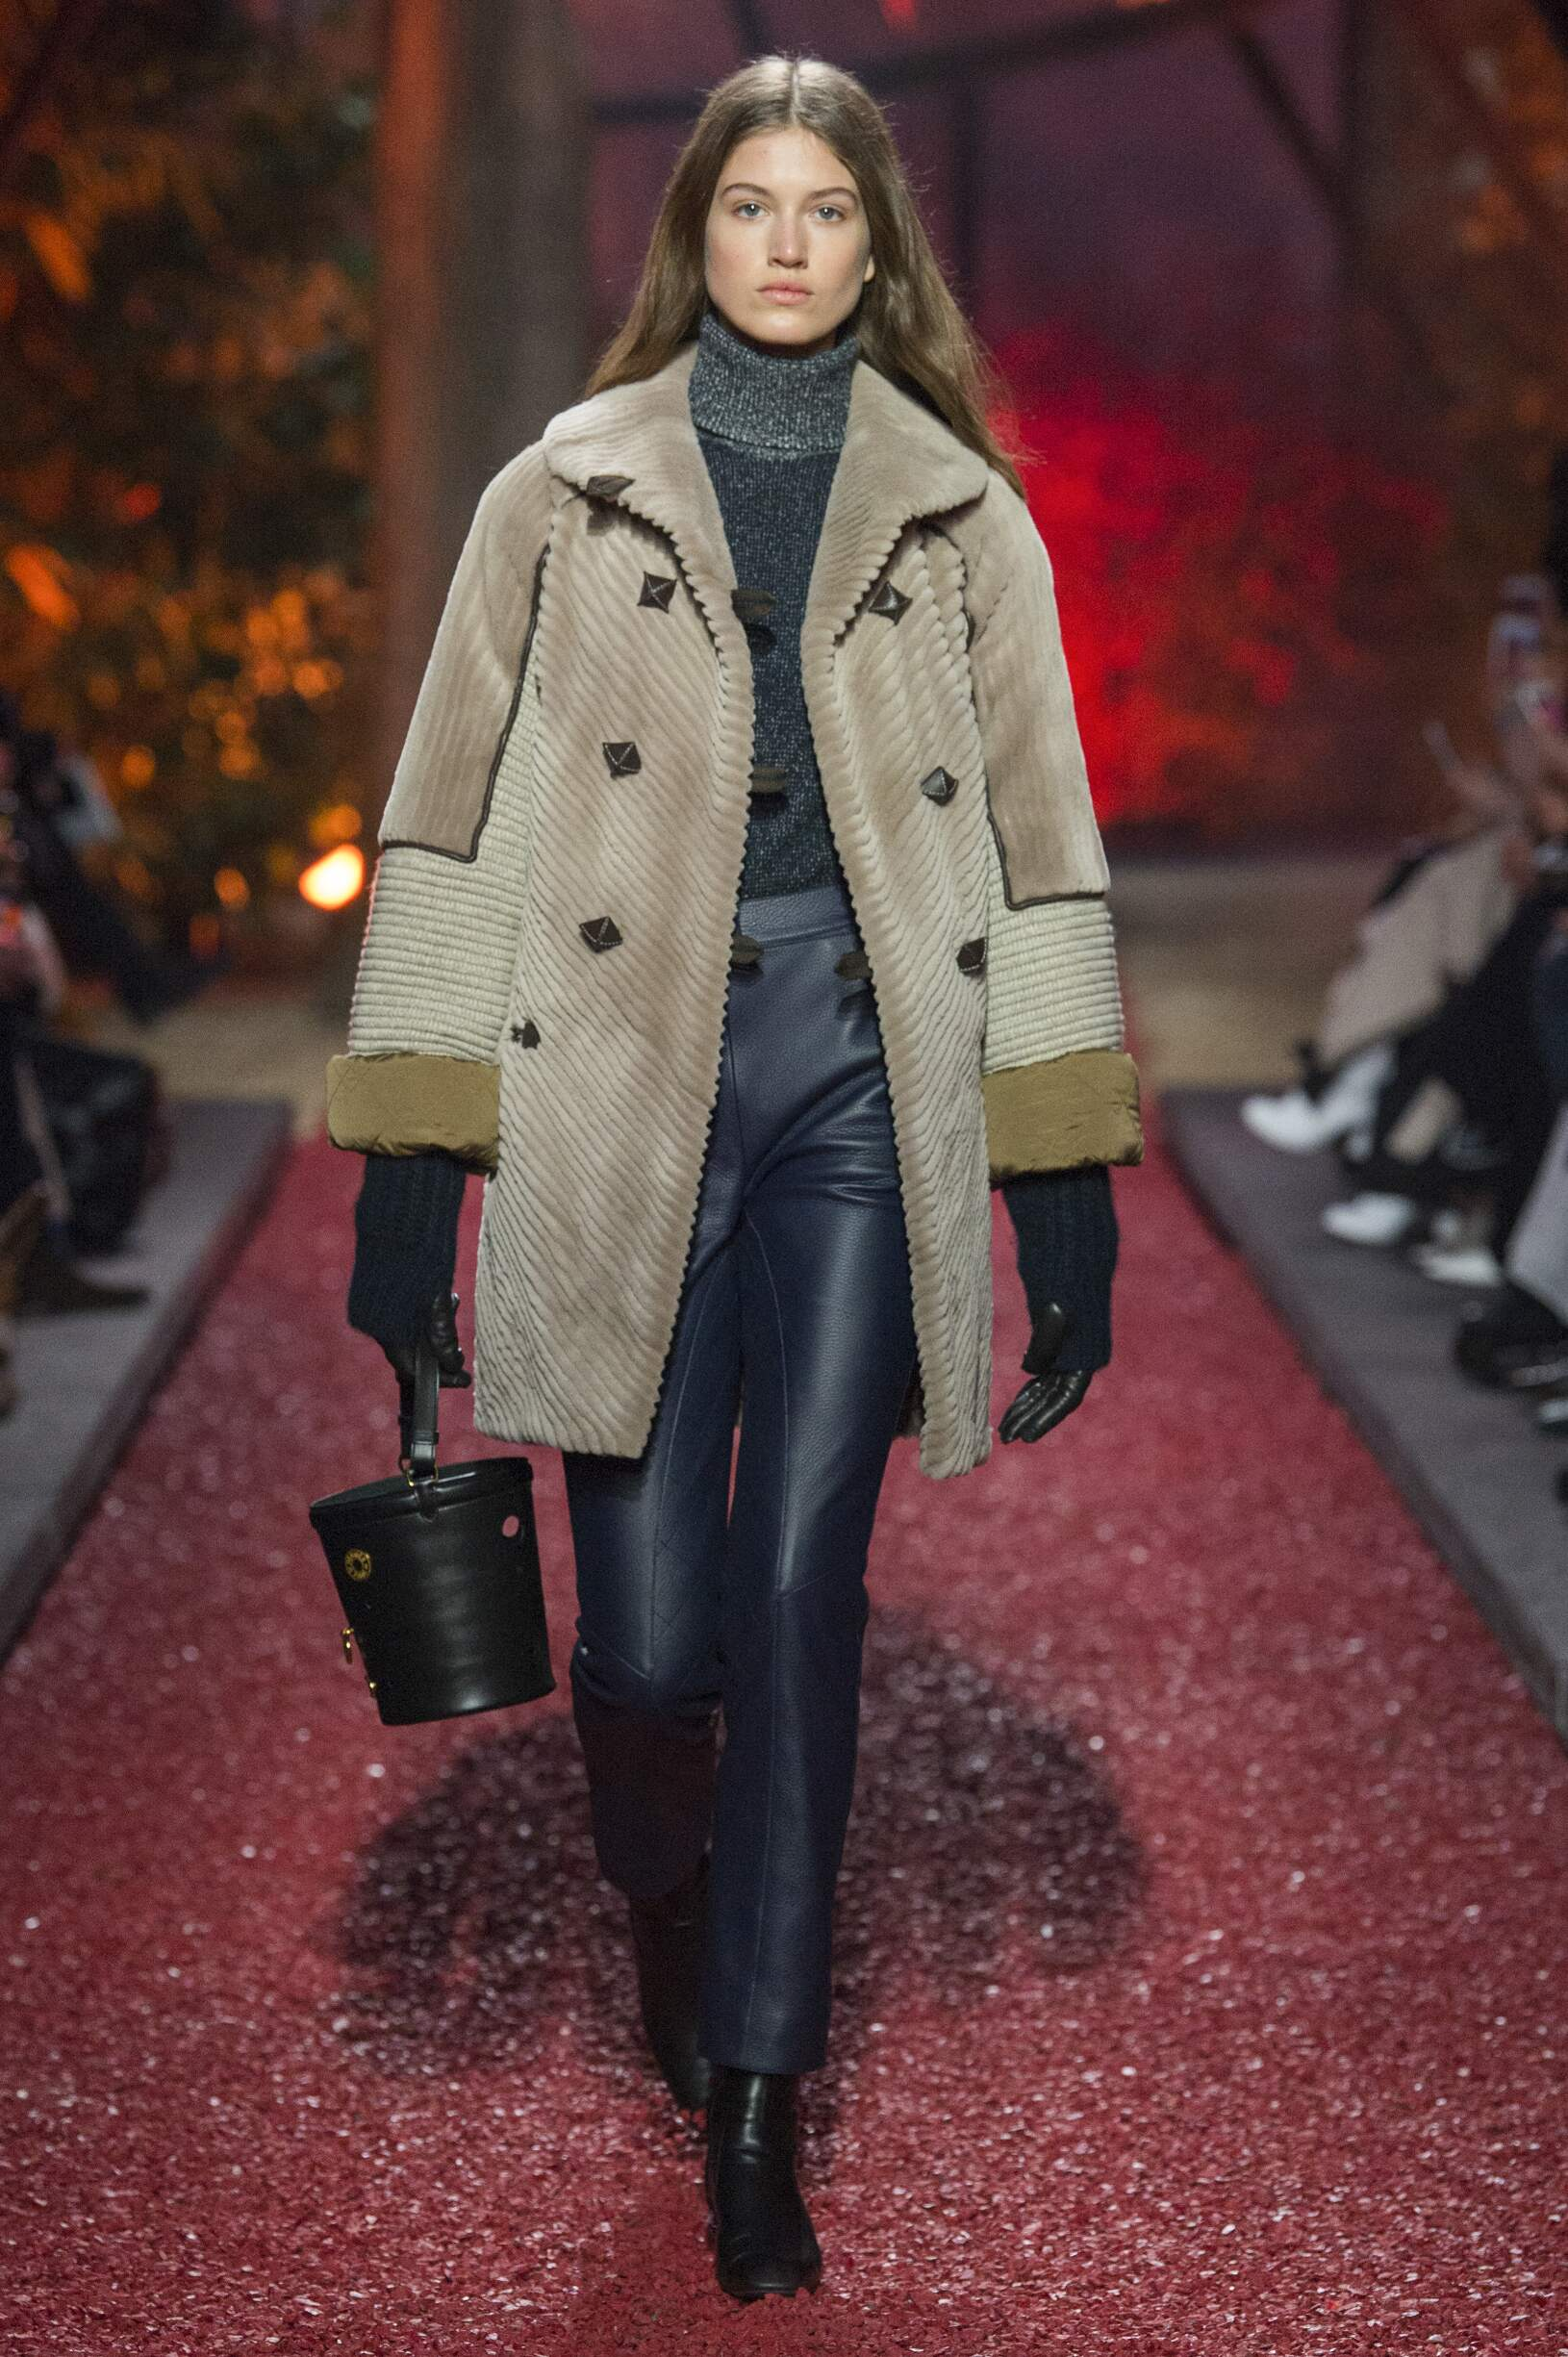 FW 2018-19 Hermès Fashion Show Paris